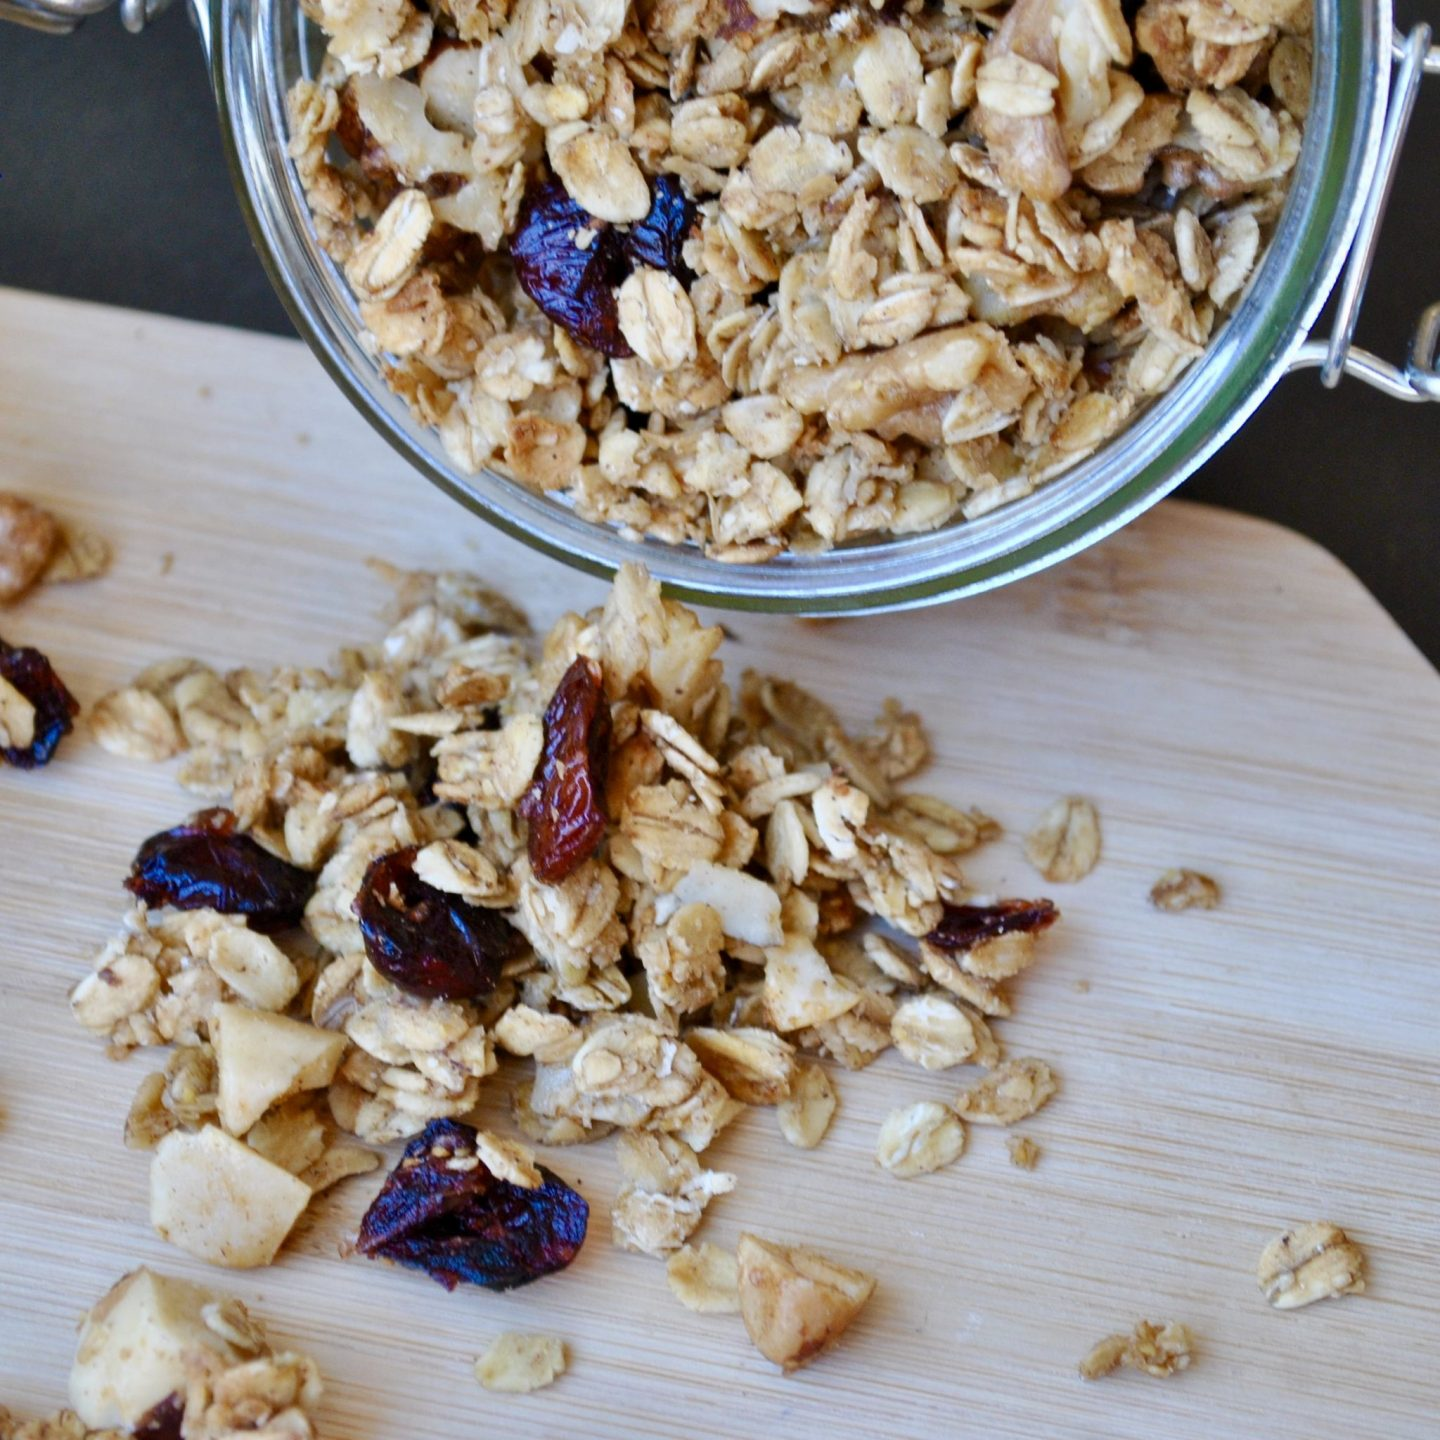 Cranberry Christmas-Spiced Granola by Eli Brecher